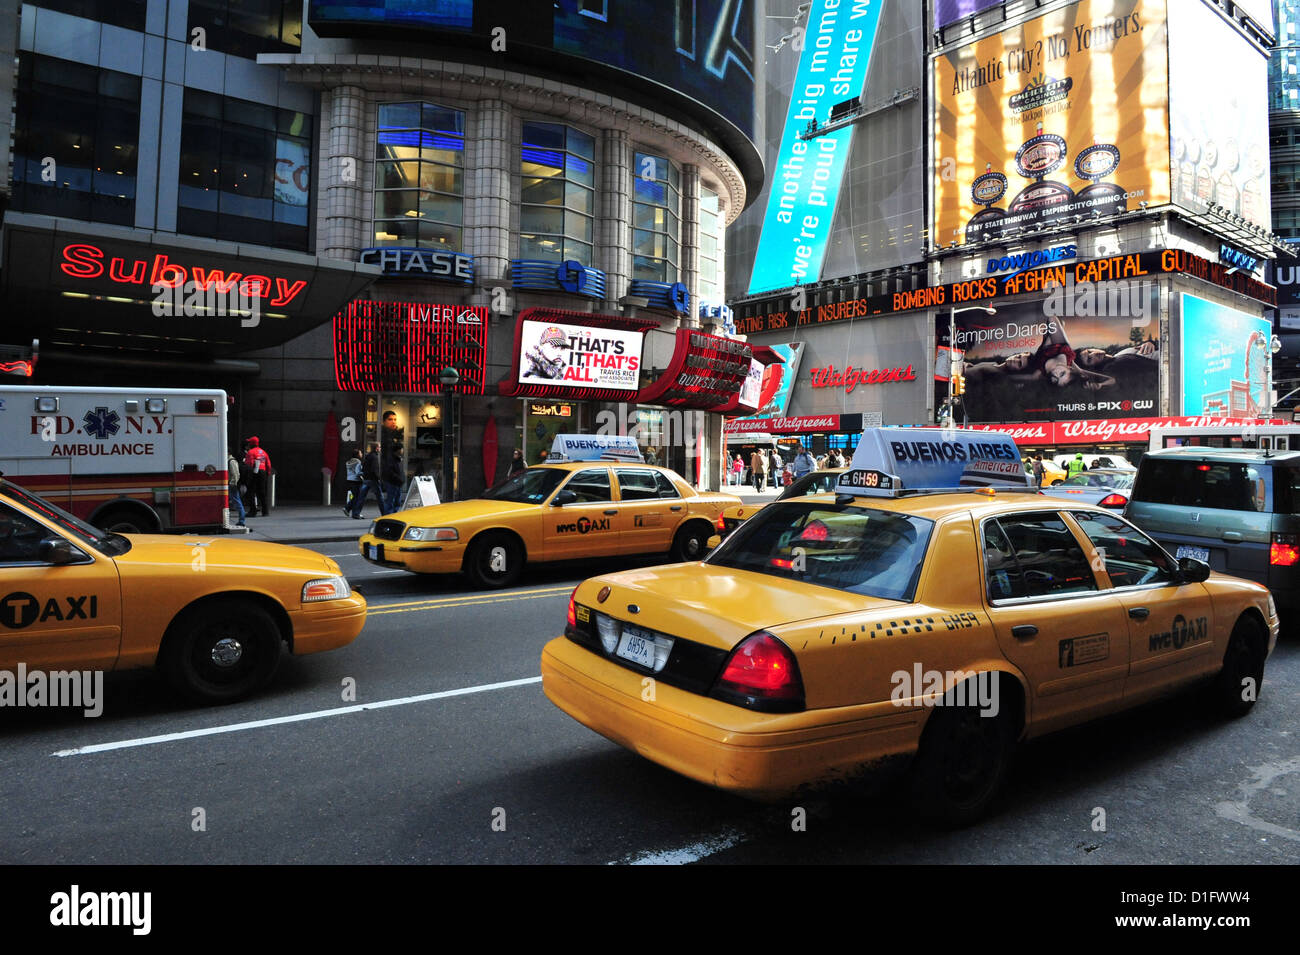 Yellow Taxicab during traffic on Time Square Manhttan New York - Stock Image